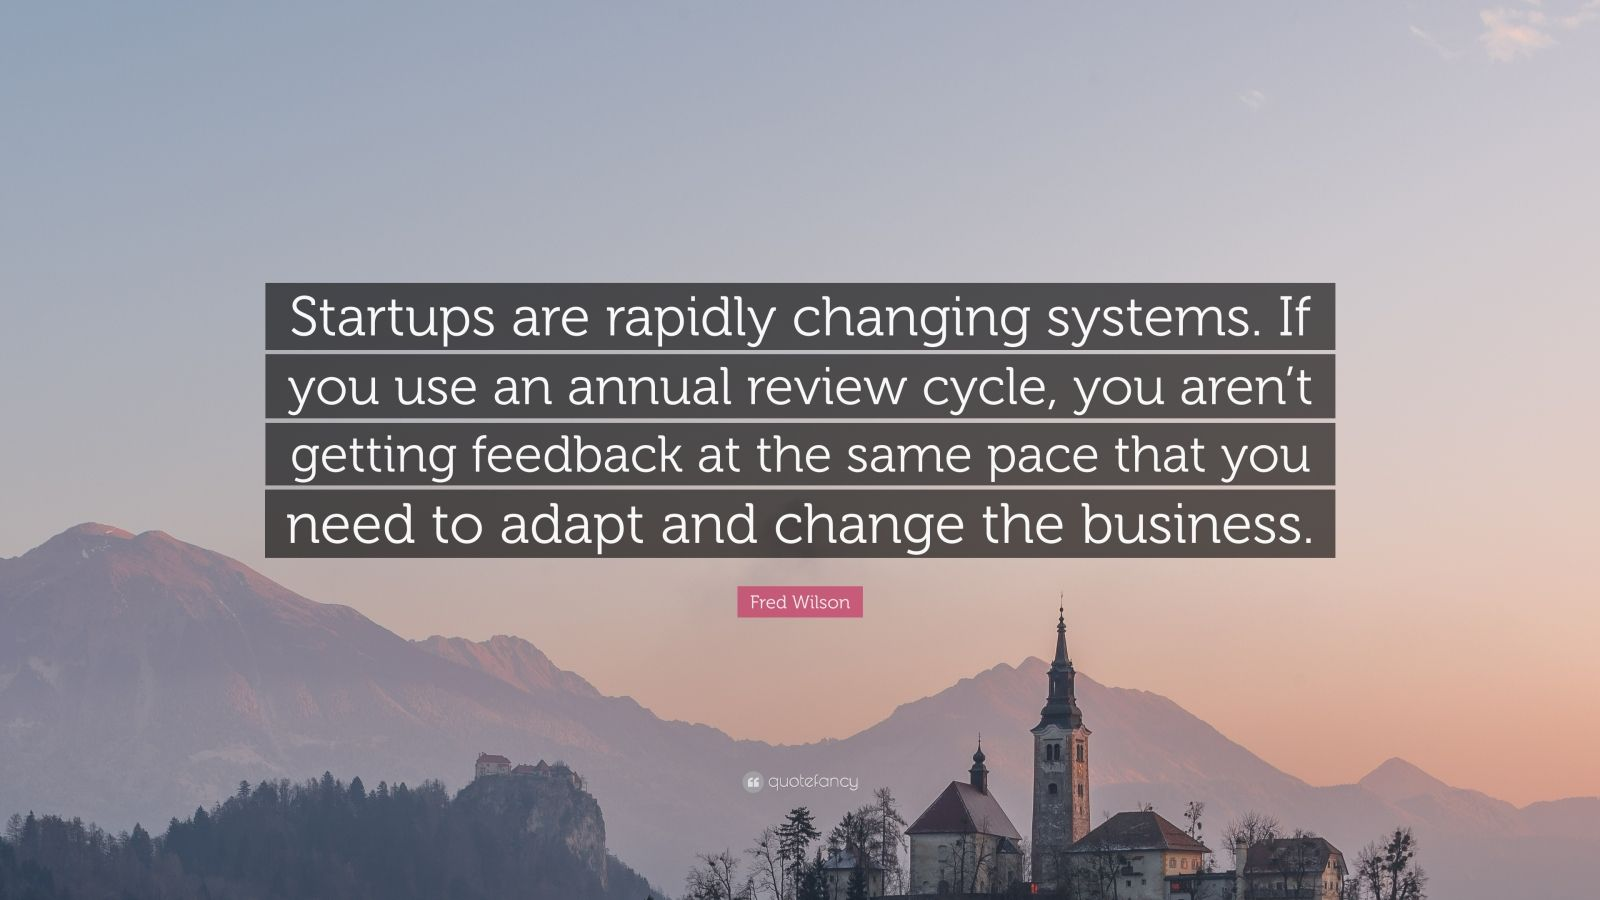 """Fred Wilson Quote: """"Startups are rapidly changing systems. If you use an annual review cycle, you aren't getting feedback at the same pace that you need to adapt and change the business."""""""